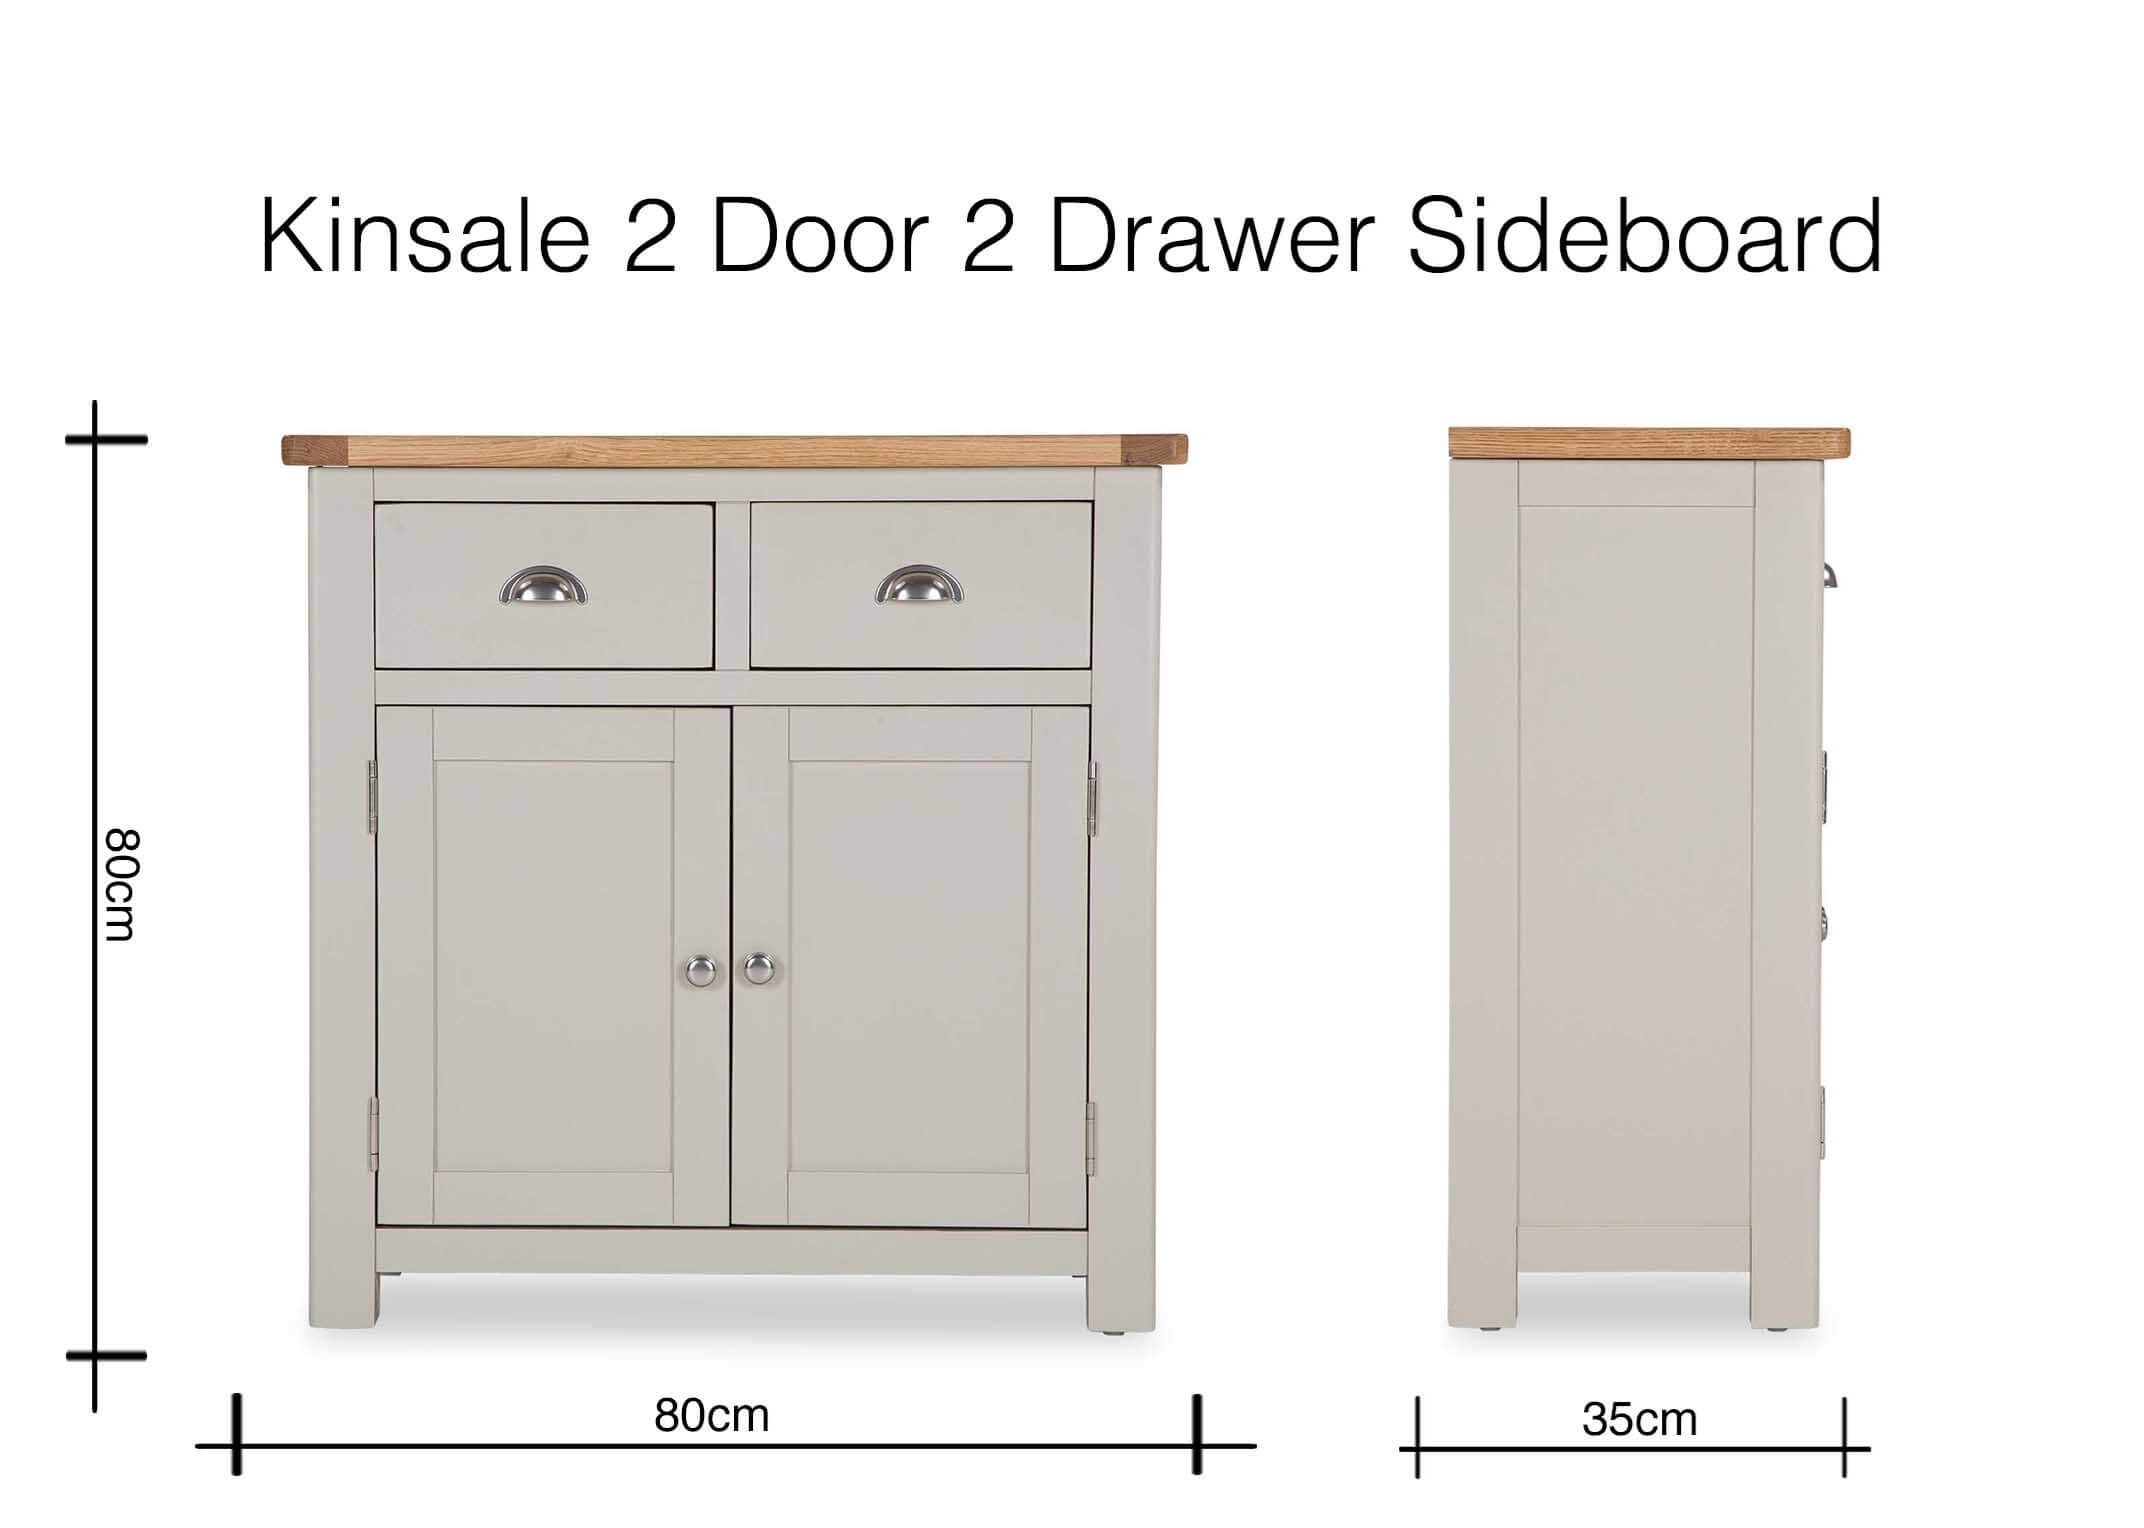 French Country Two-Tone Two Door Two Drawer Sideboard - Kinsale - Ez throughout 2-Drawer Sideboards (Image 15 of 30)